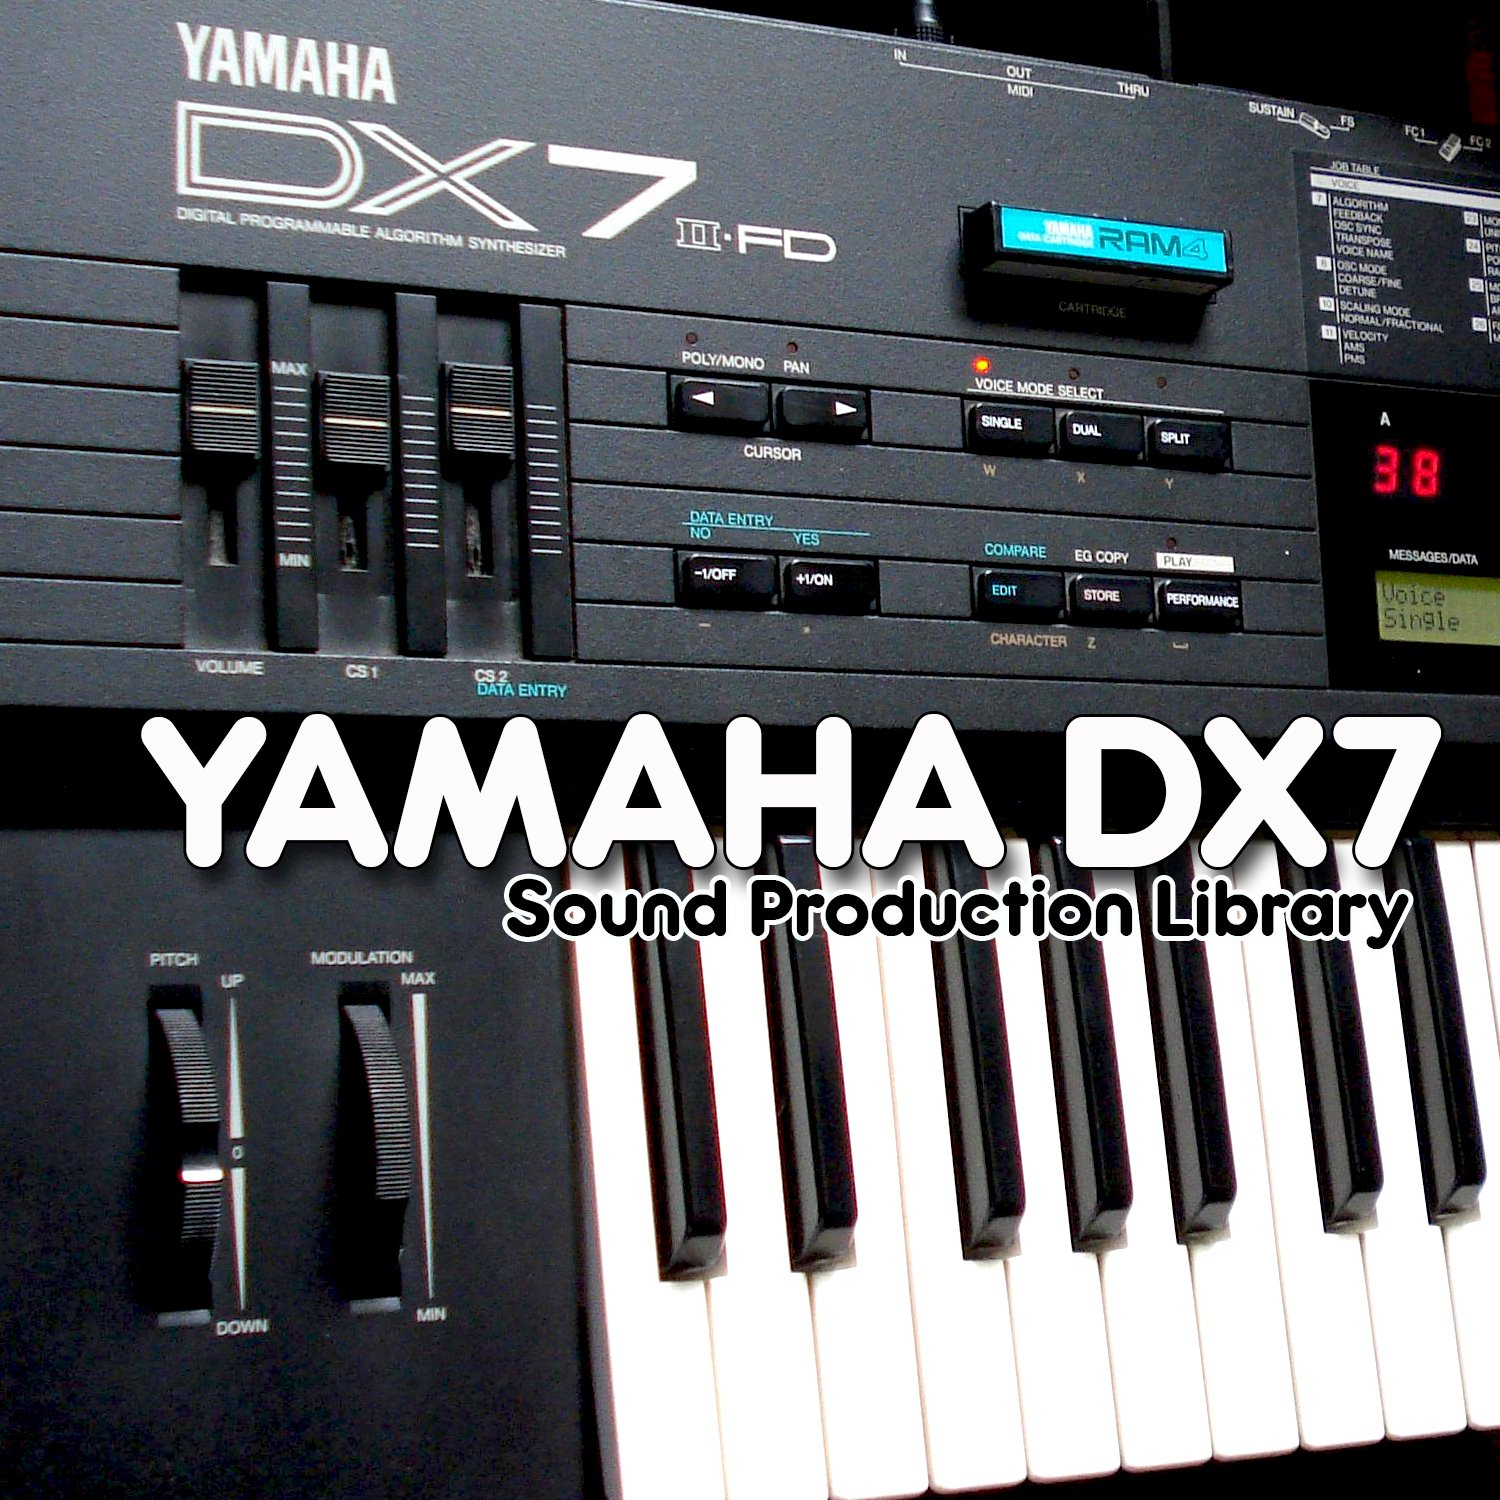 YAMAHA DX7 - King of 80`s - Large unique original WAVE/Kontakt Multi-Layer Samples Library on DVD or download by SoundLoad